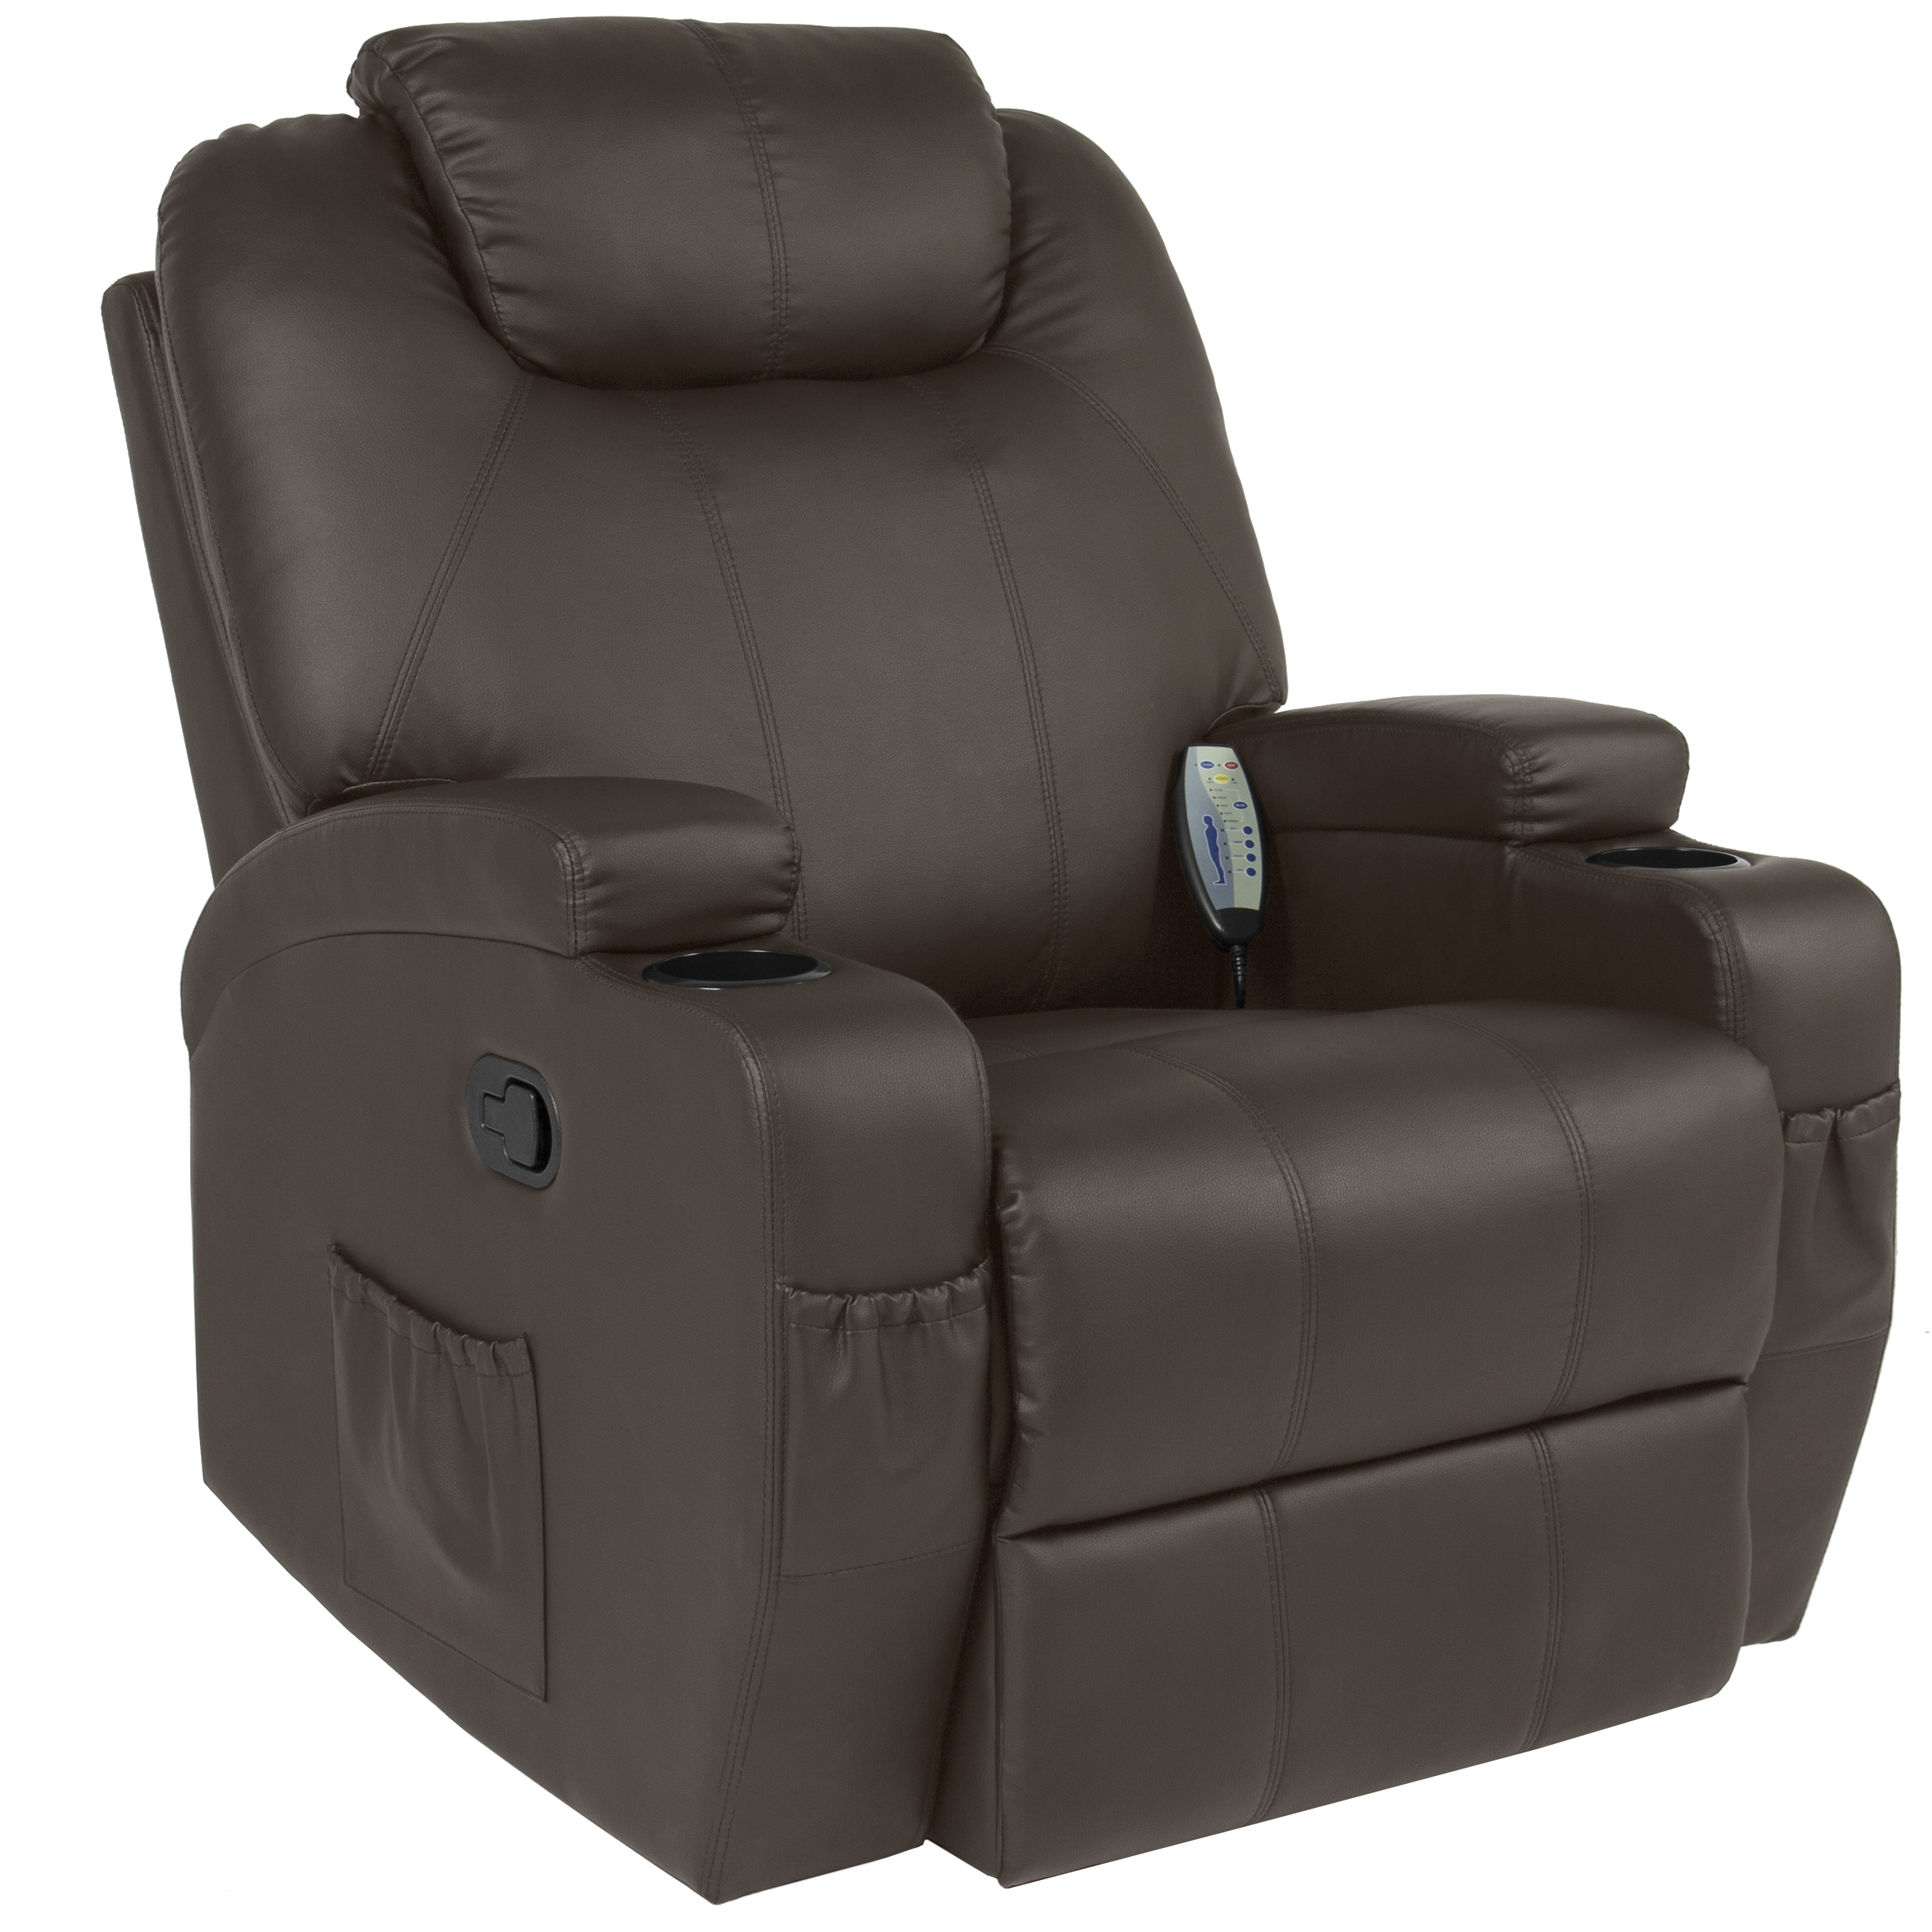 Best Choice Products Executive PU Leather Swivel Electric Massage Recliner  Chair w/ Remote Control, 5 Heat & Vibration Modes, 2 Cup Holders,